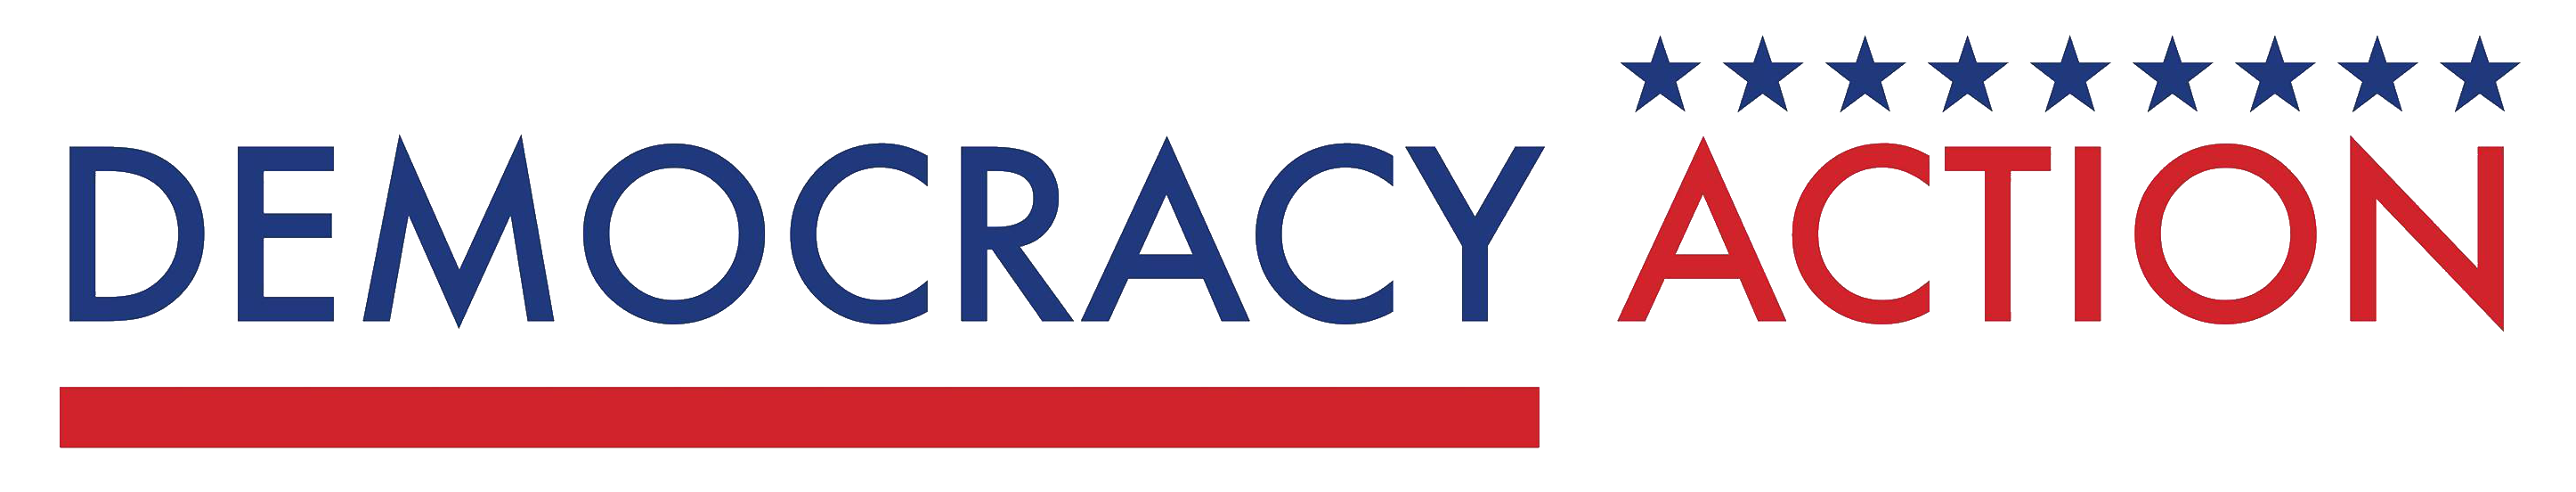 Democracy Action Logo